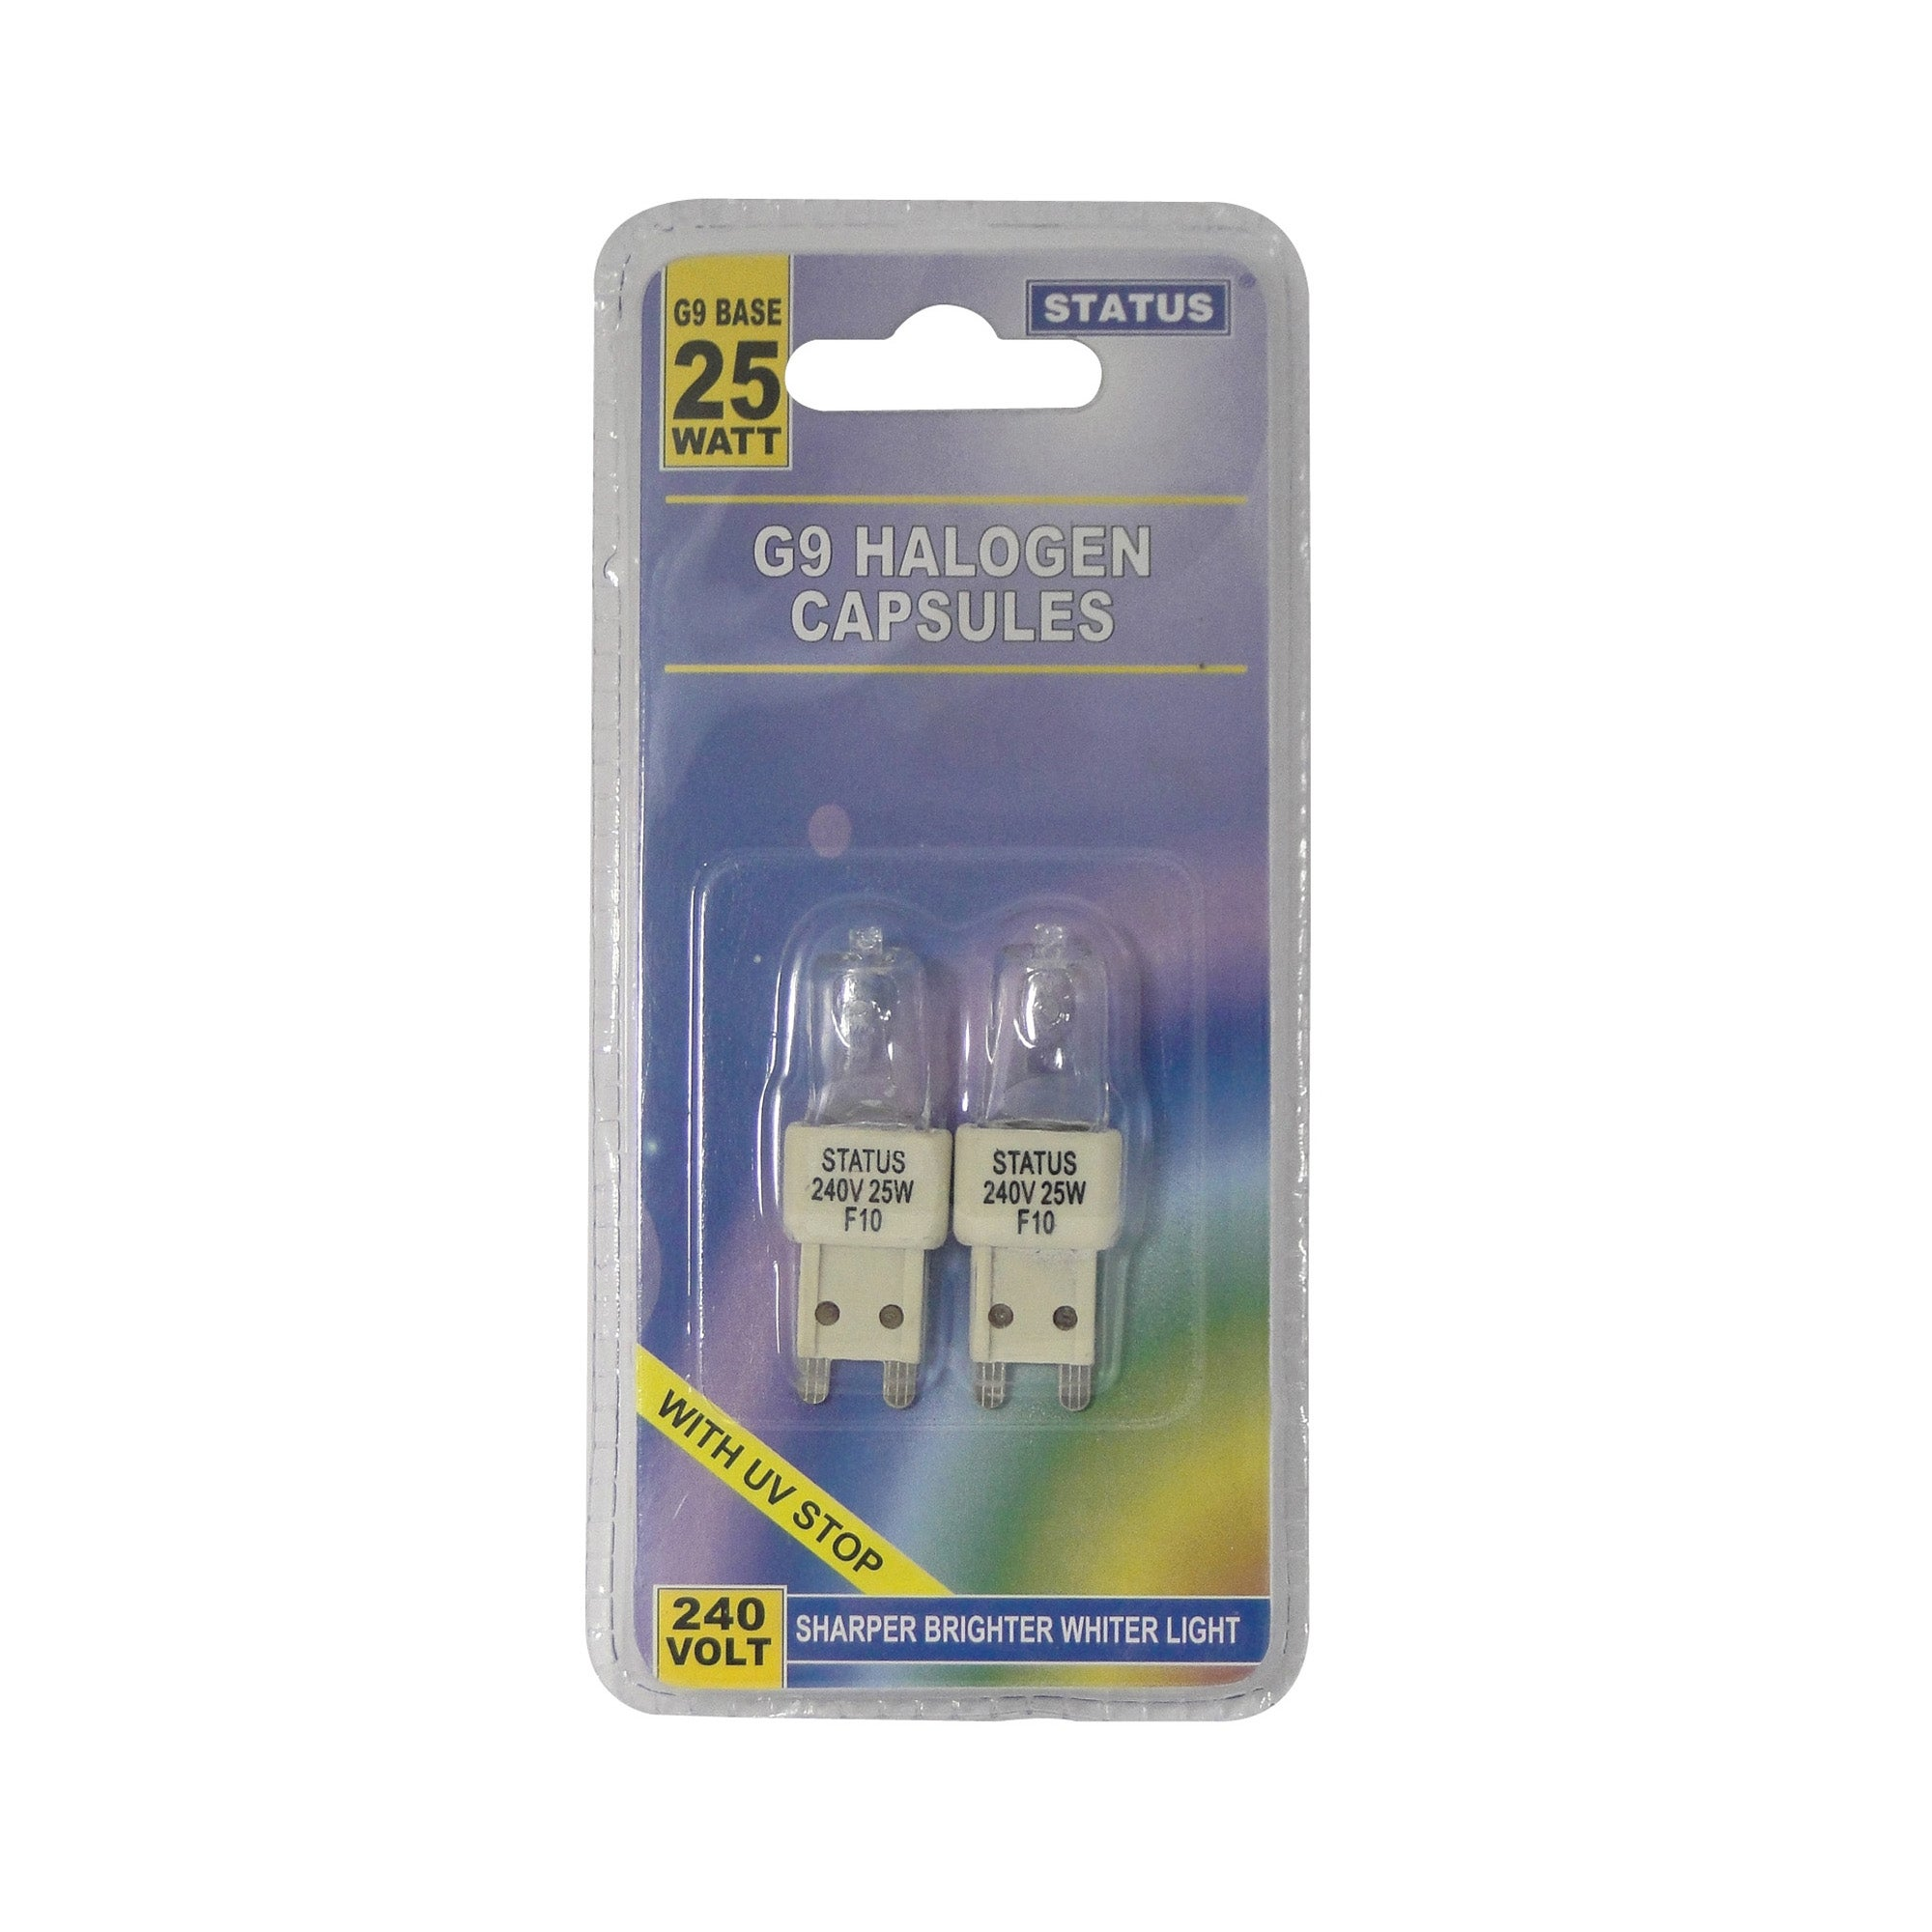 Status Pack of 2 20 Watt G9 Halogen Capsules